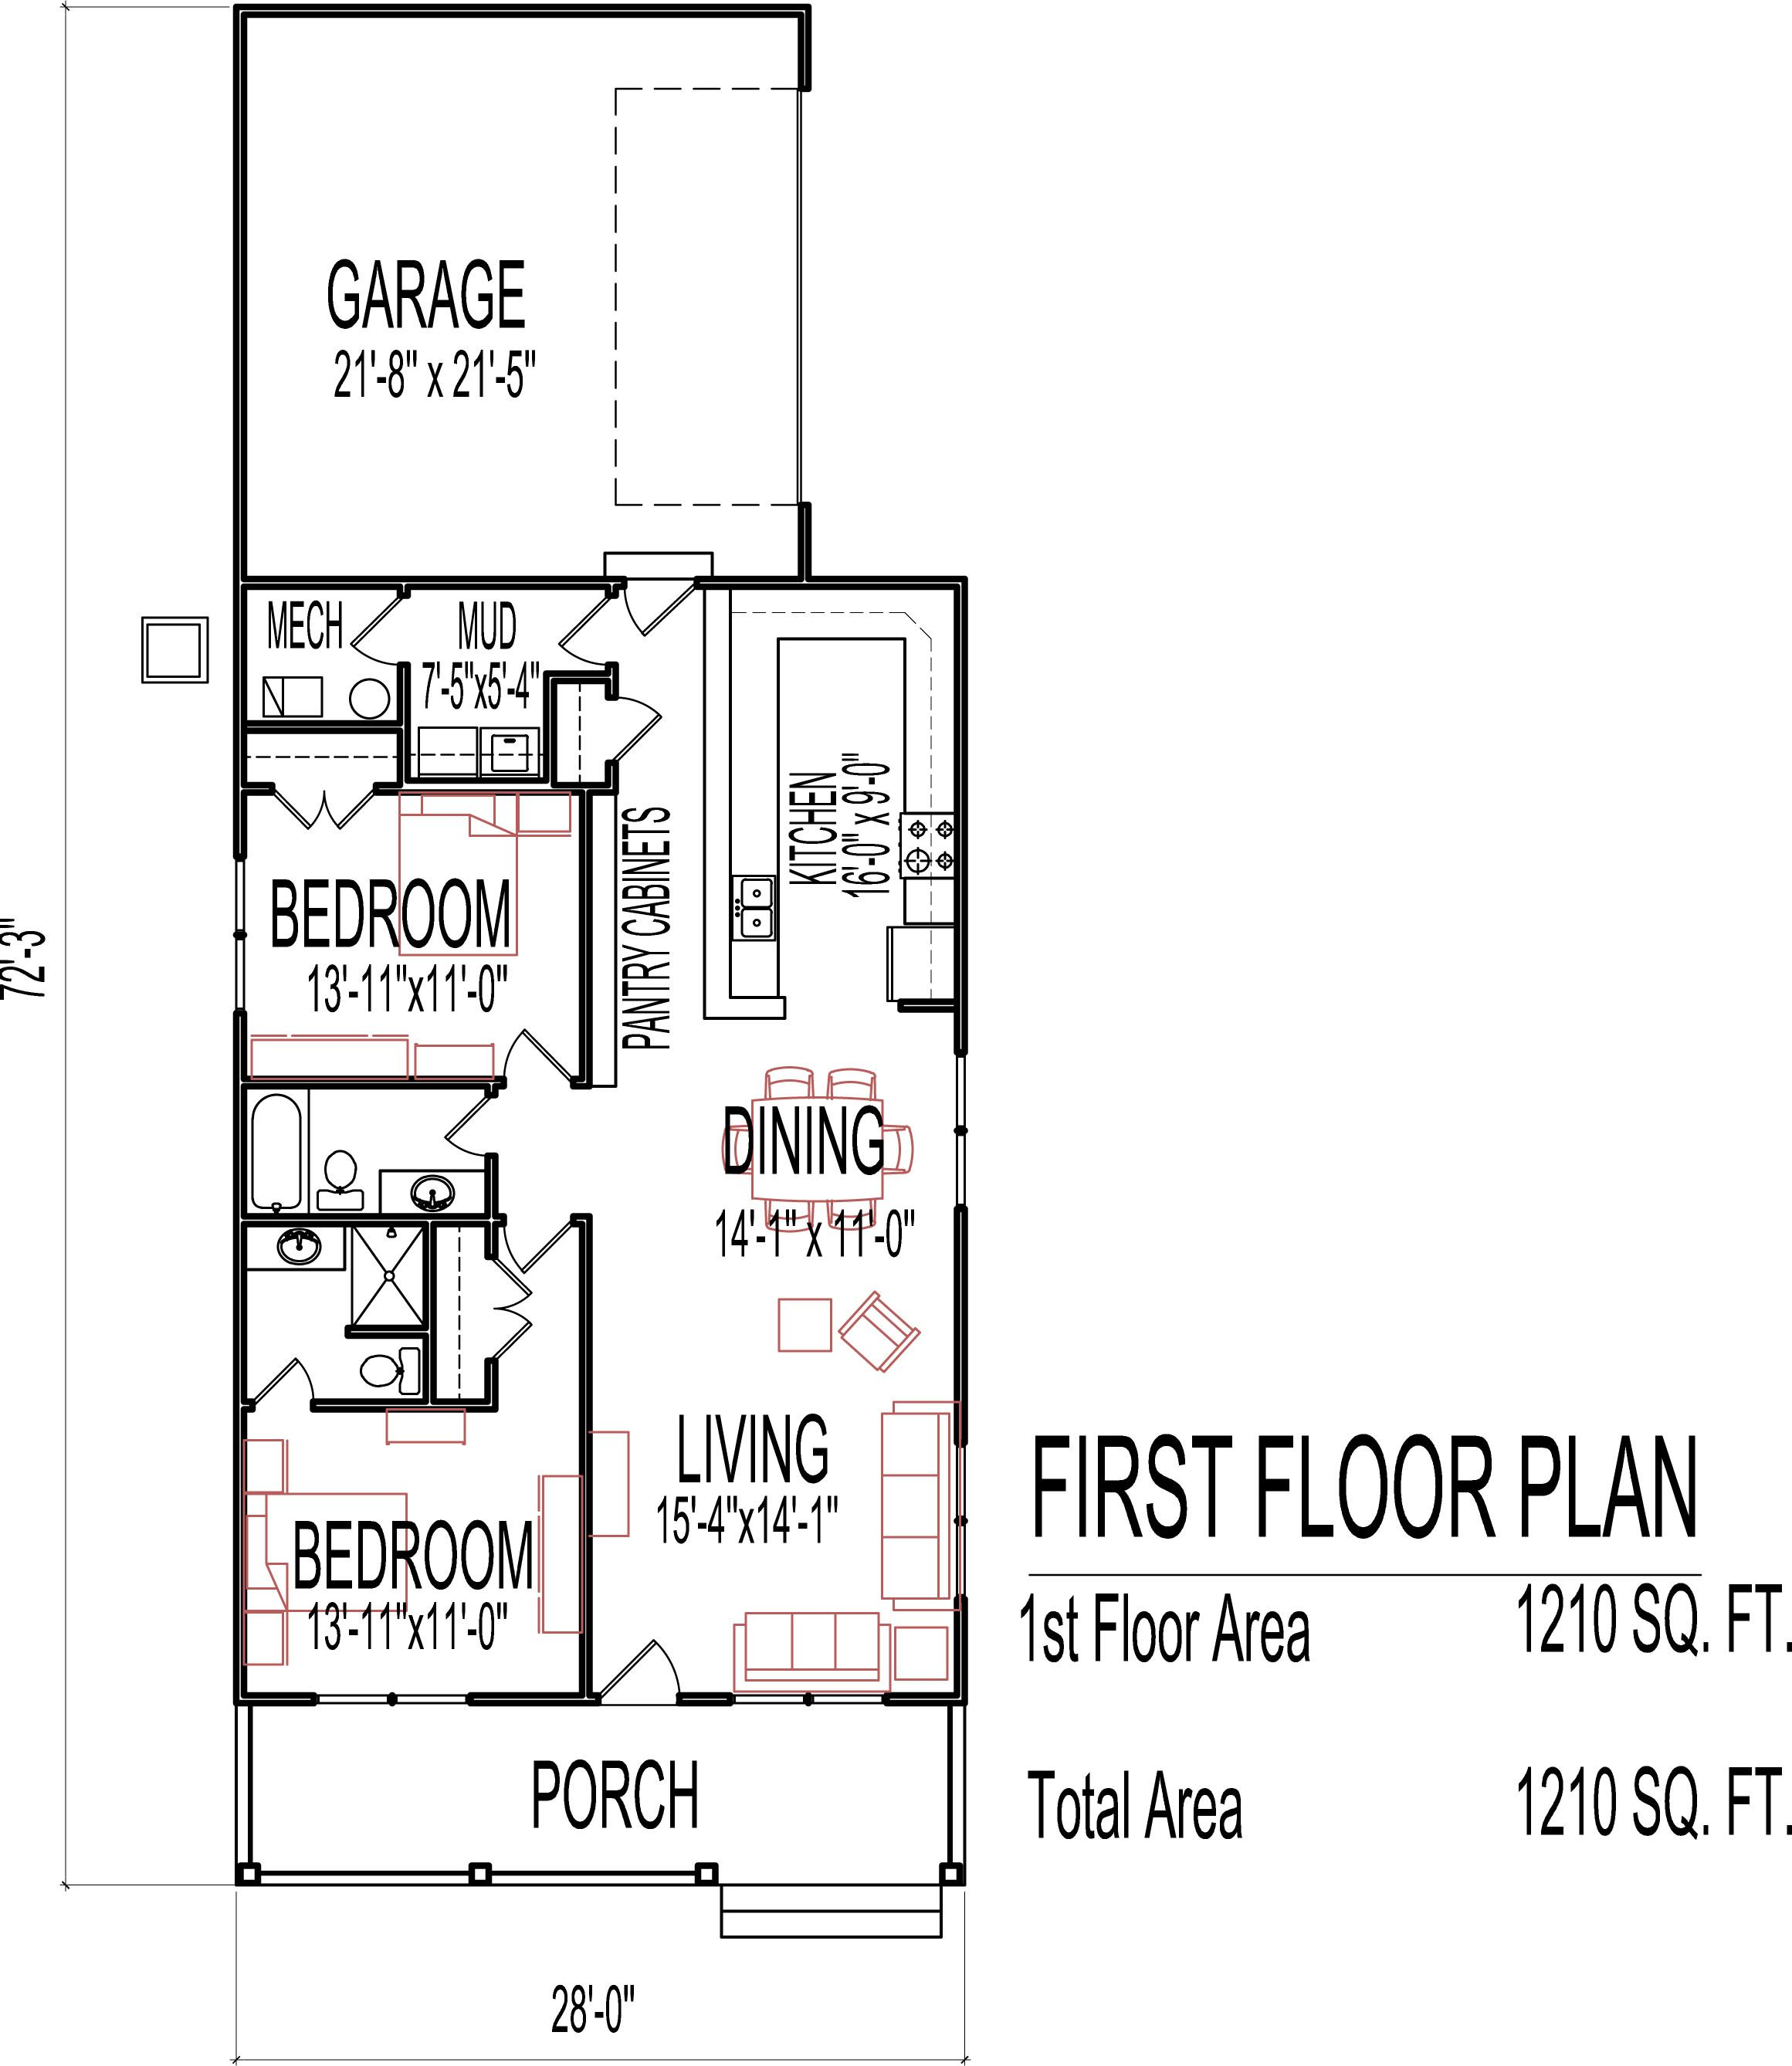 Small low cost economical 2 bedroom 2 bath 1200 sq ft for 1 bedroom home floor plans